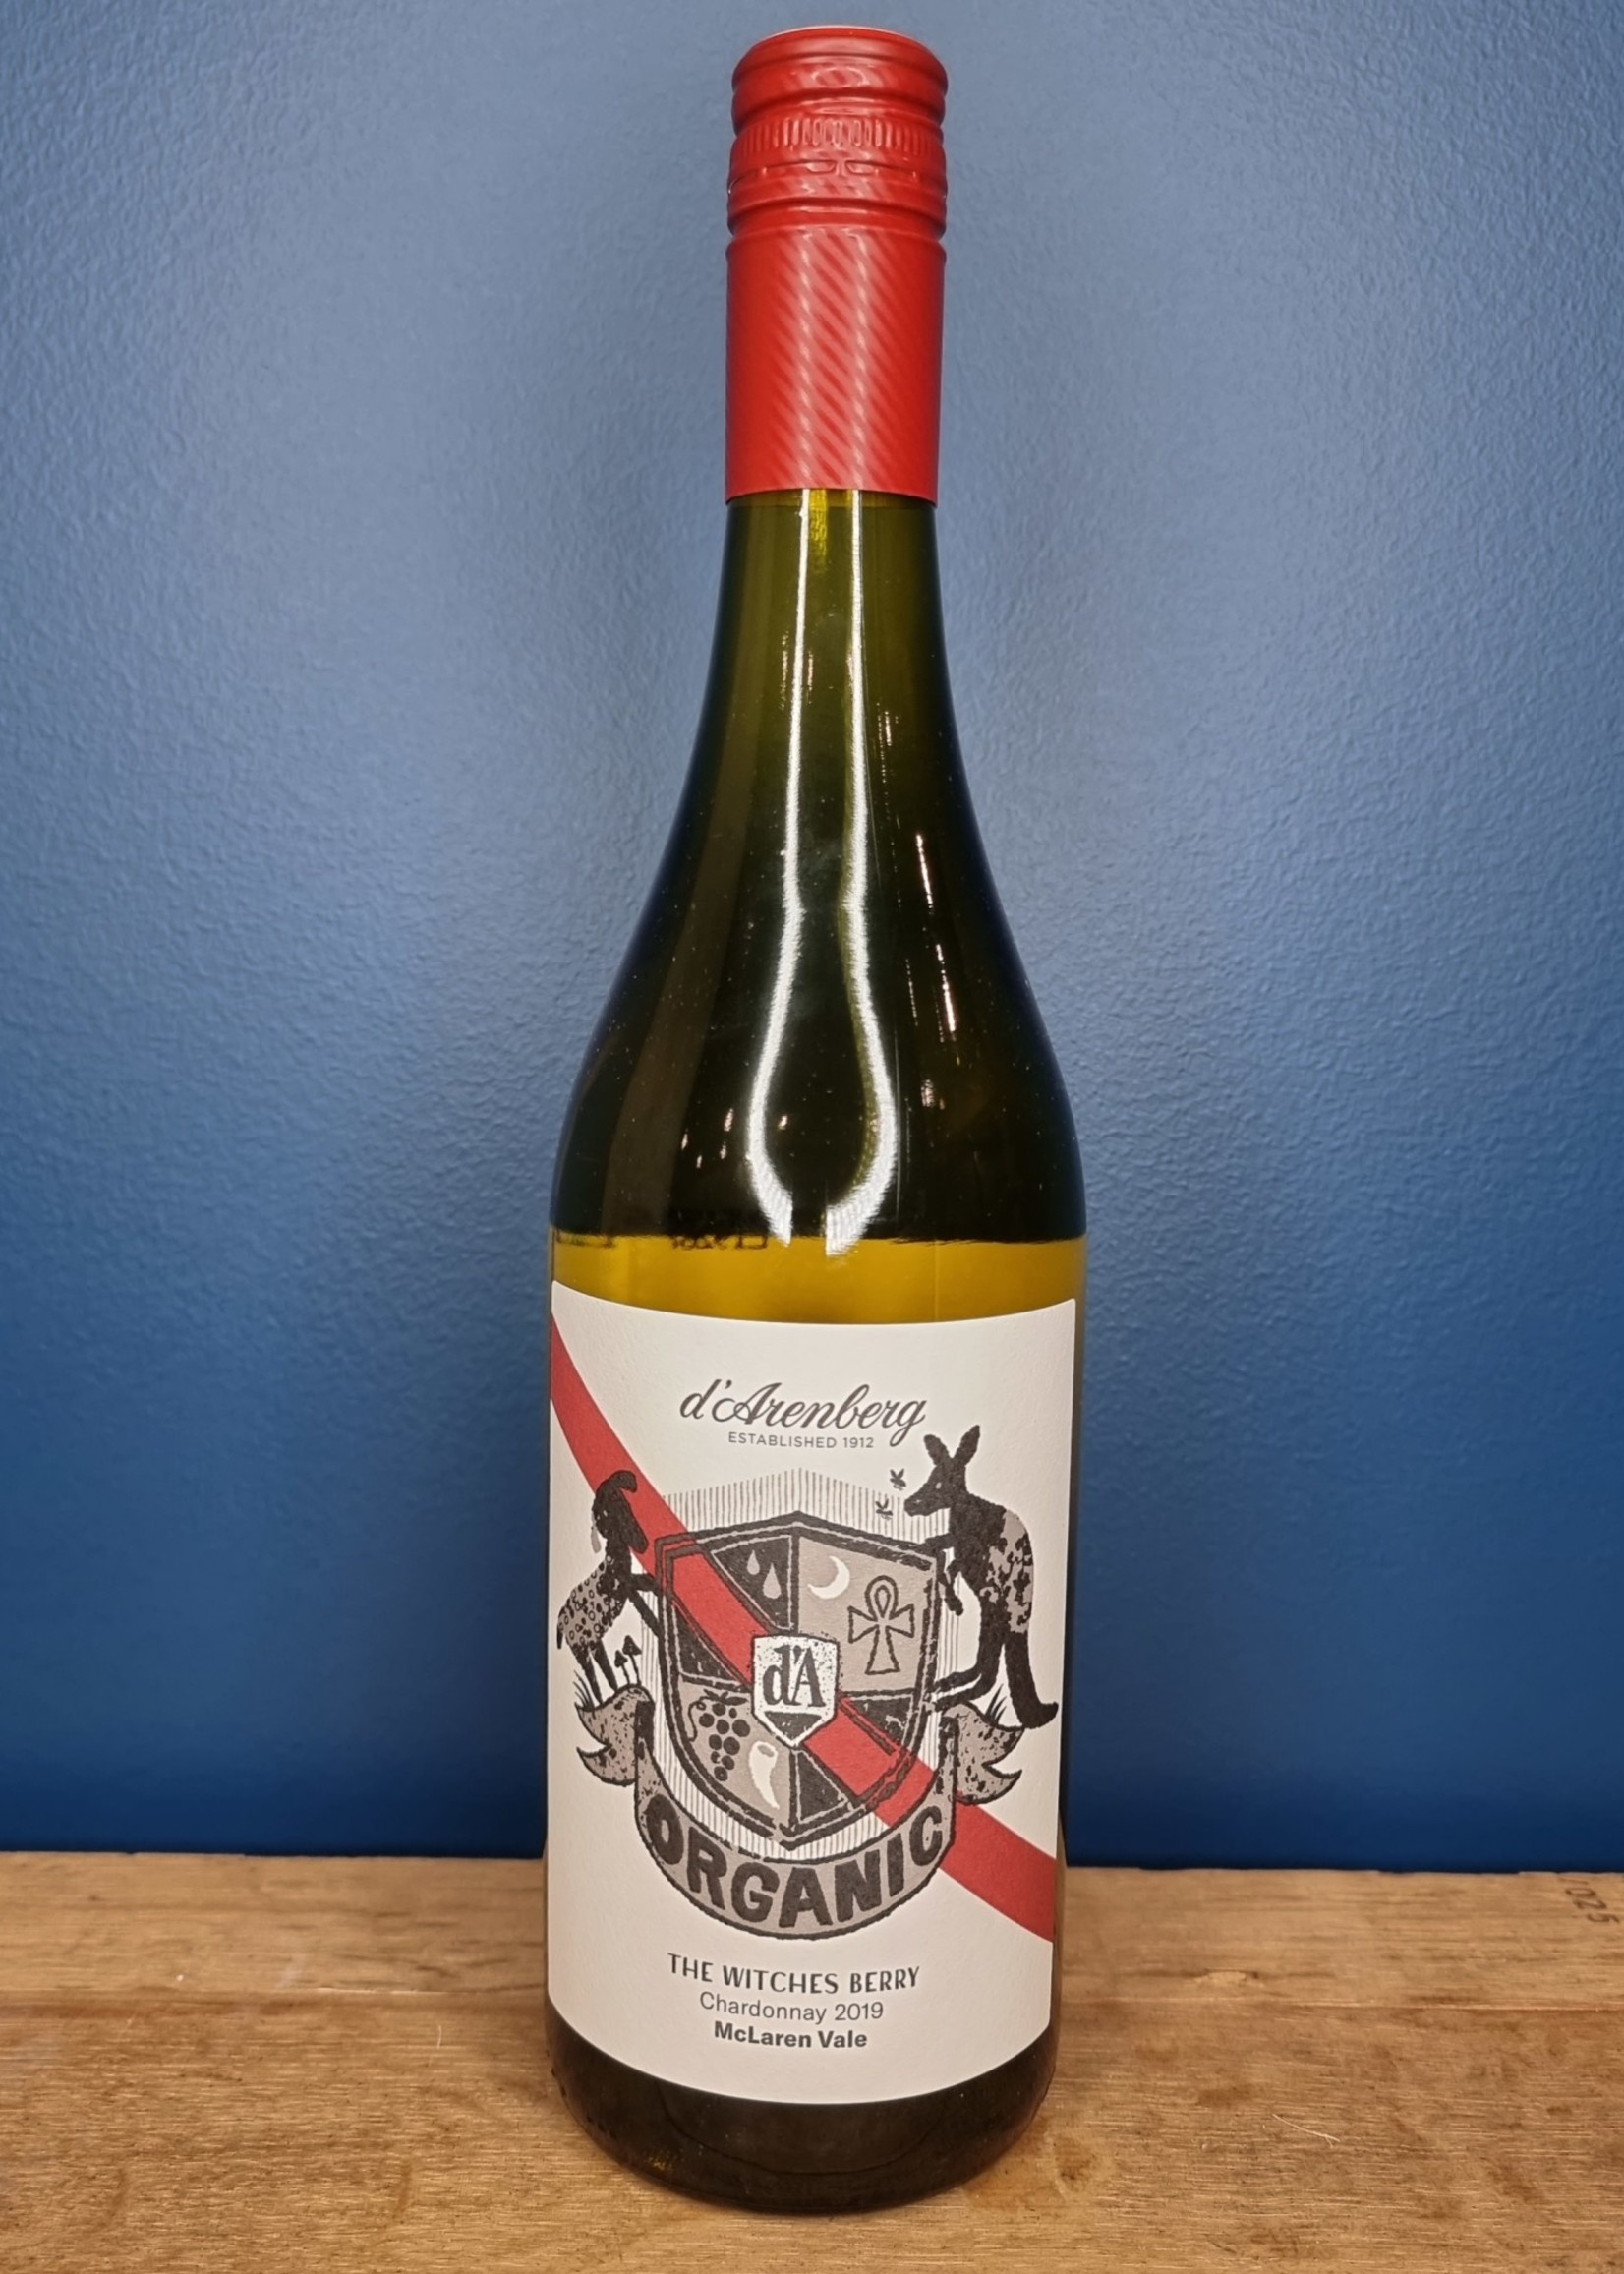 d'Arenberg d'Arenberg The Witches Berry Chardonnay